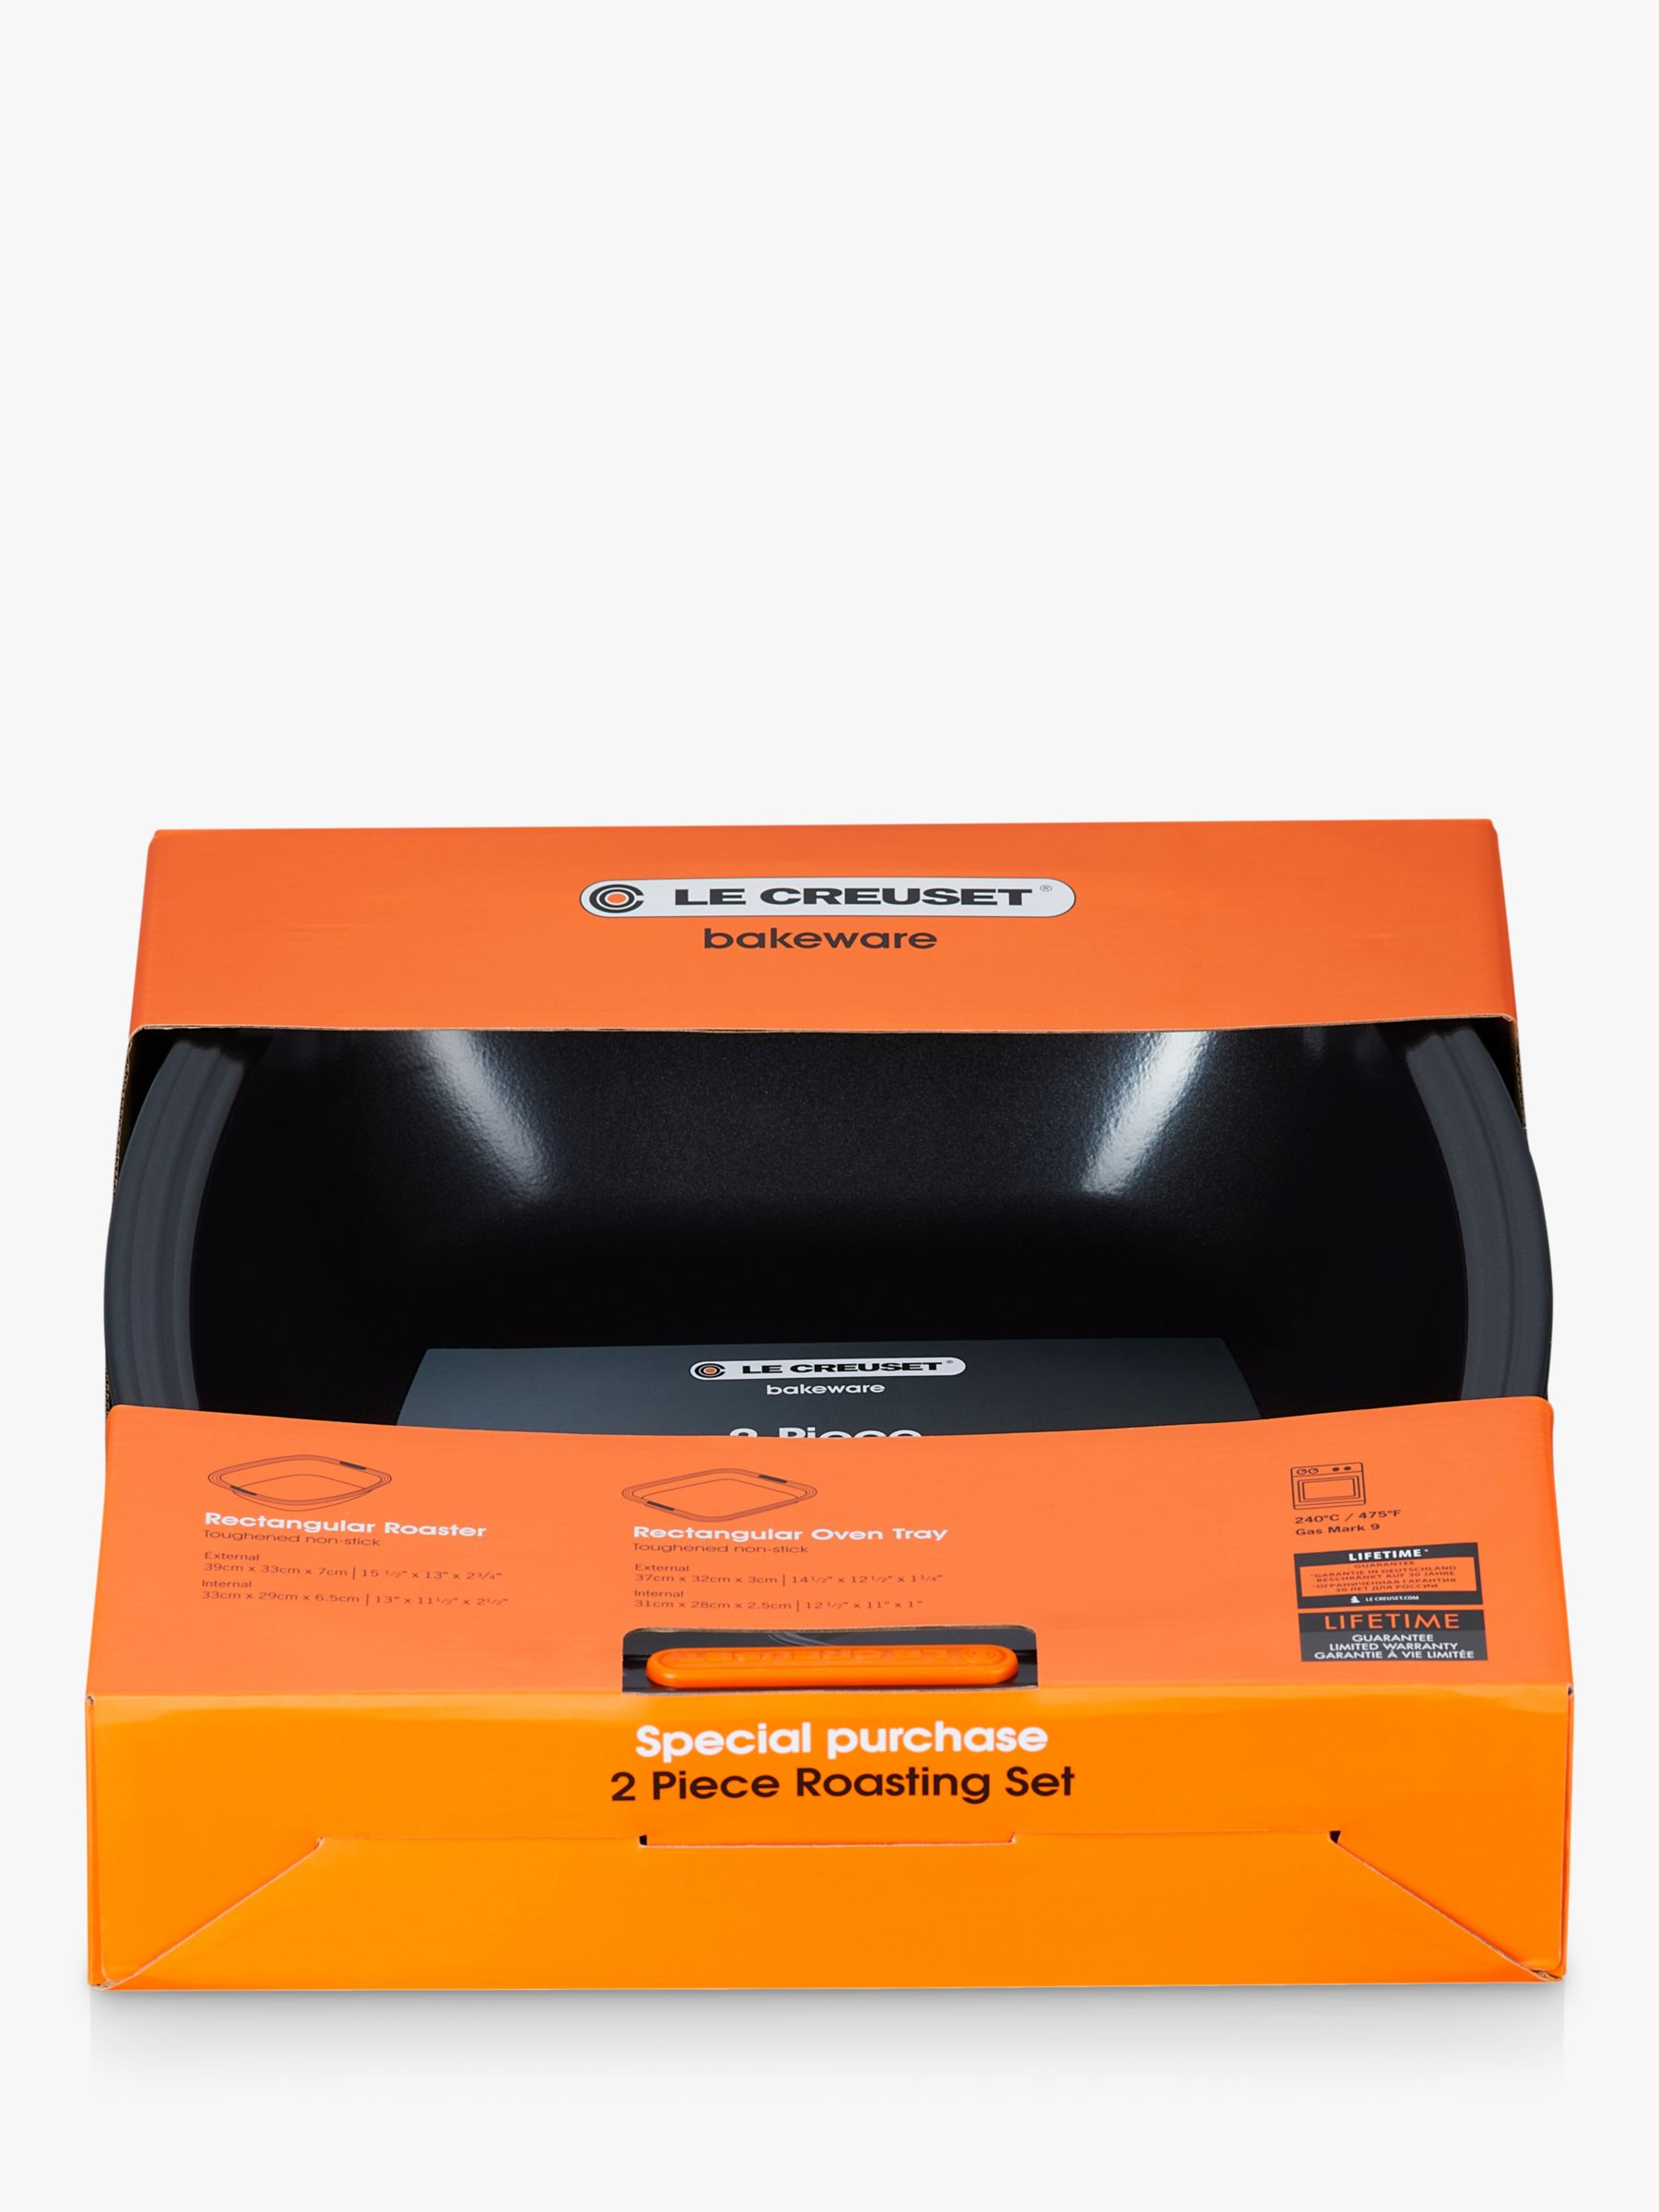 Le Creuset Non-Stick Rectangular Roaster and Oven Tray Set